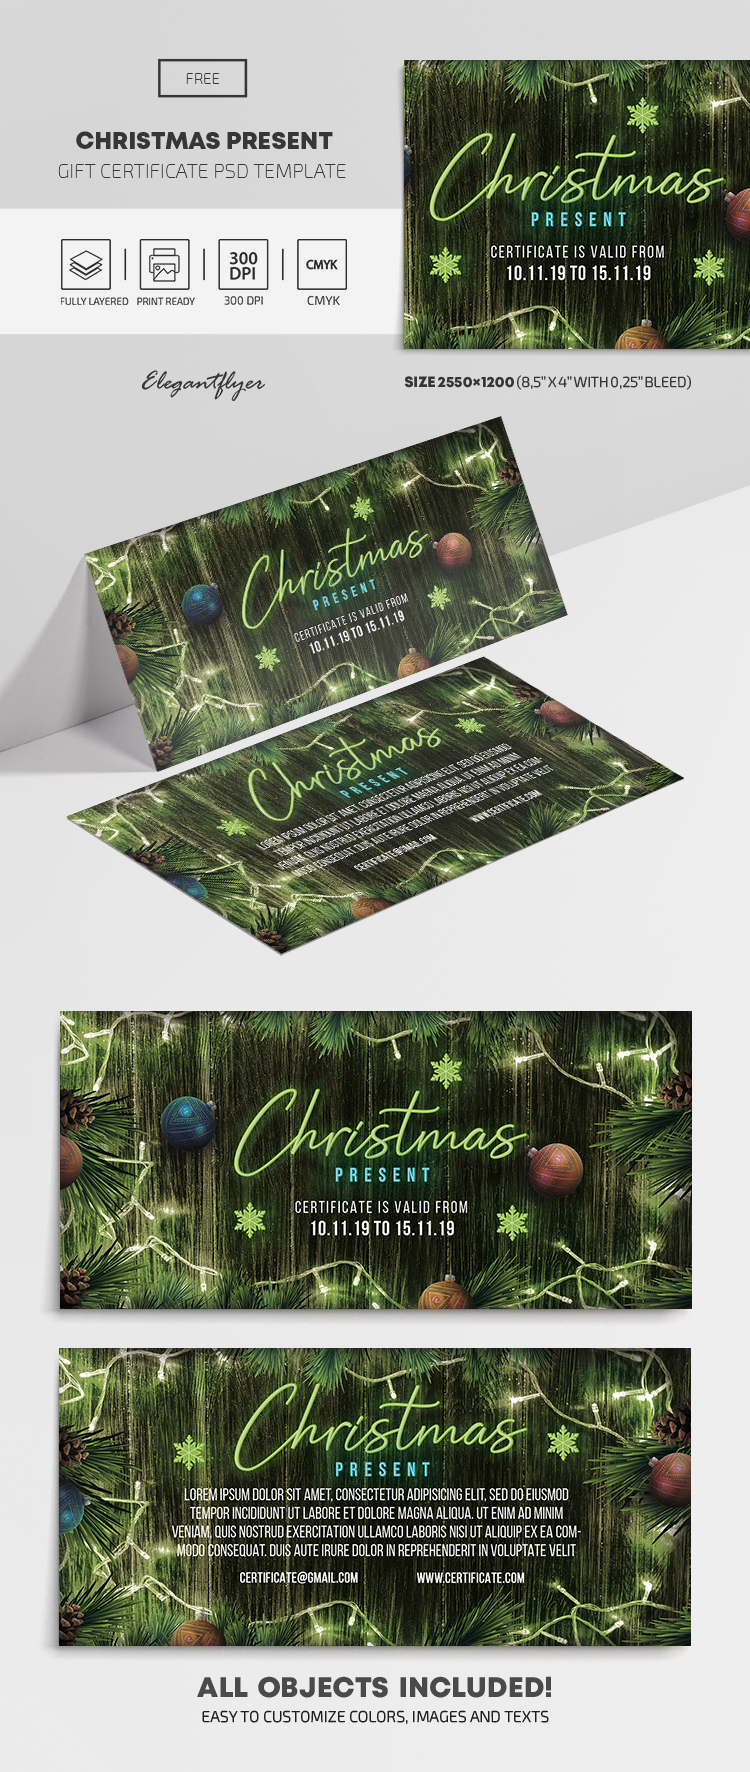 Christmas Present – Free Gift Certificate Template in PSD